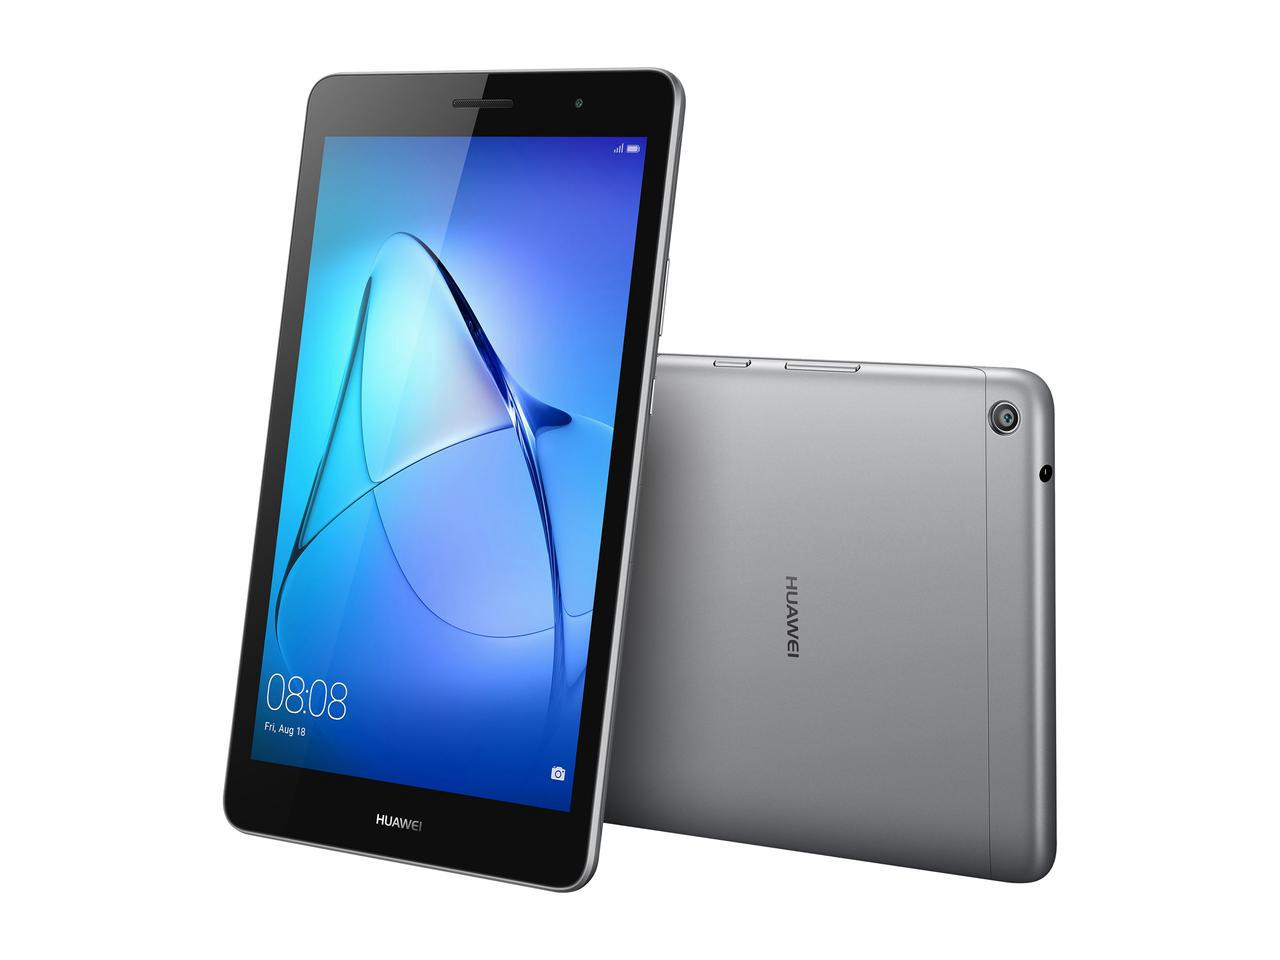 huawei 8 inch tablet. today the company took wraps off four new tablets, with both 8-inch and 10-inch models available. they don\u0027t really stand out at all, but huawei 8 inch tablet i